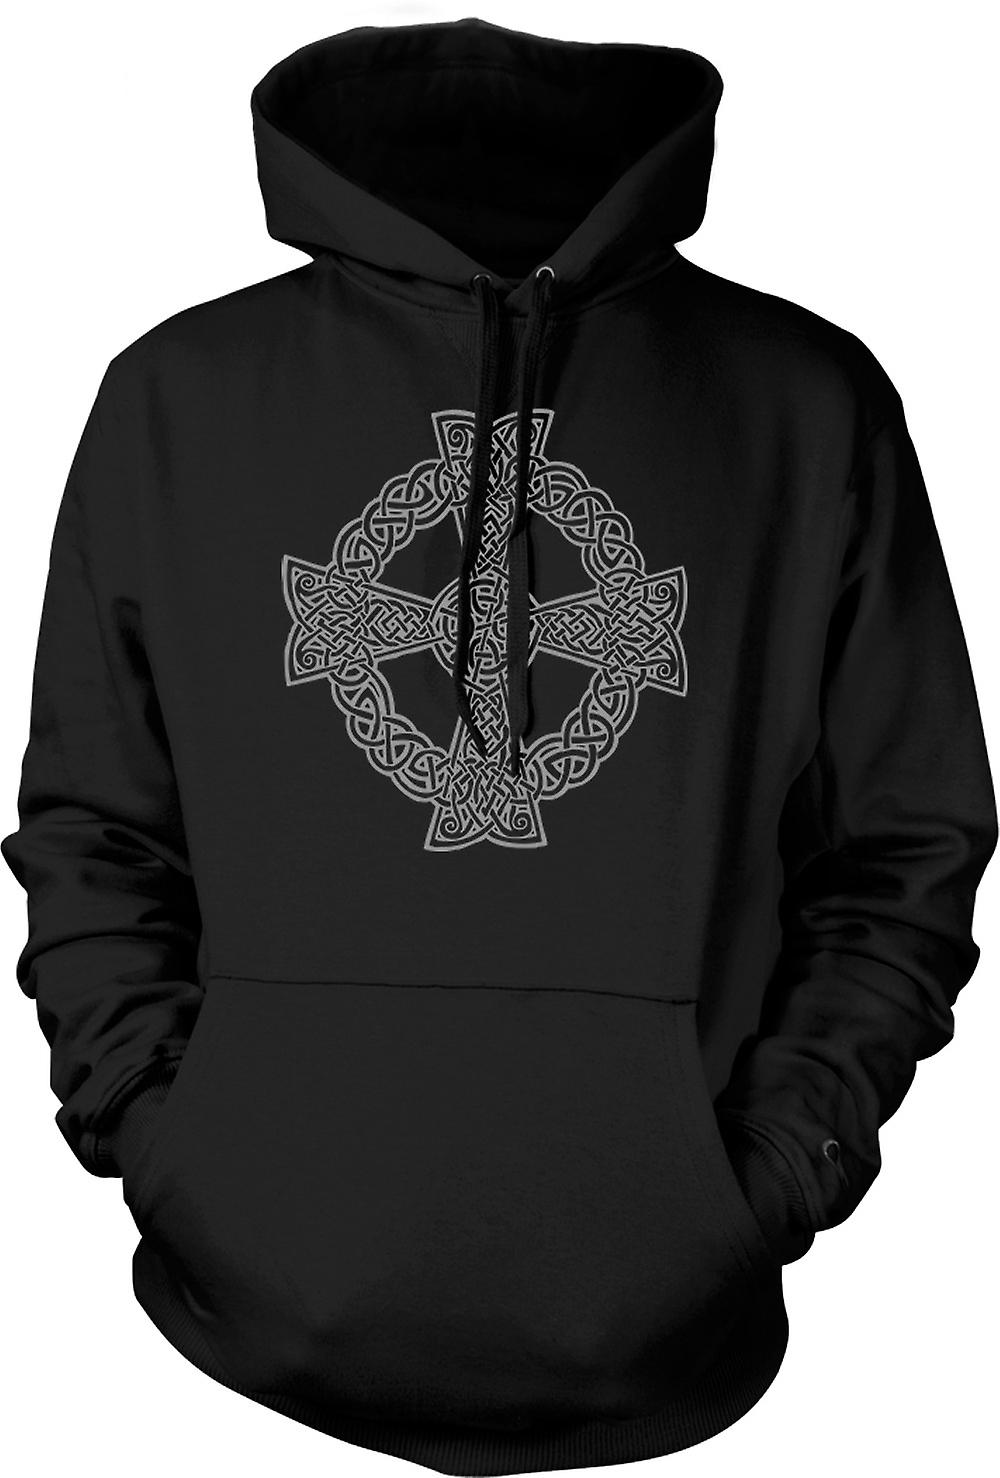 Mens Hoodie - Celtic Cross 1 - Tattoo Design